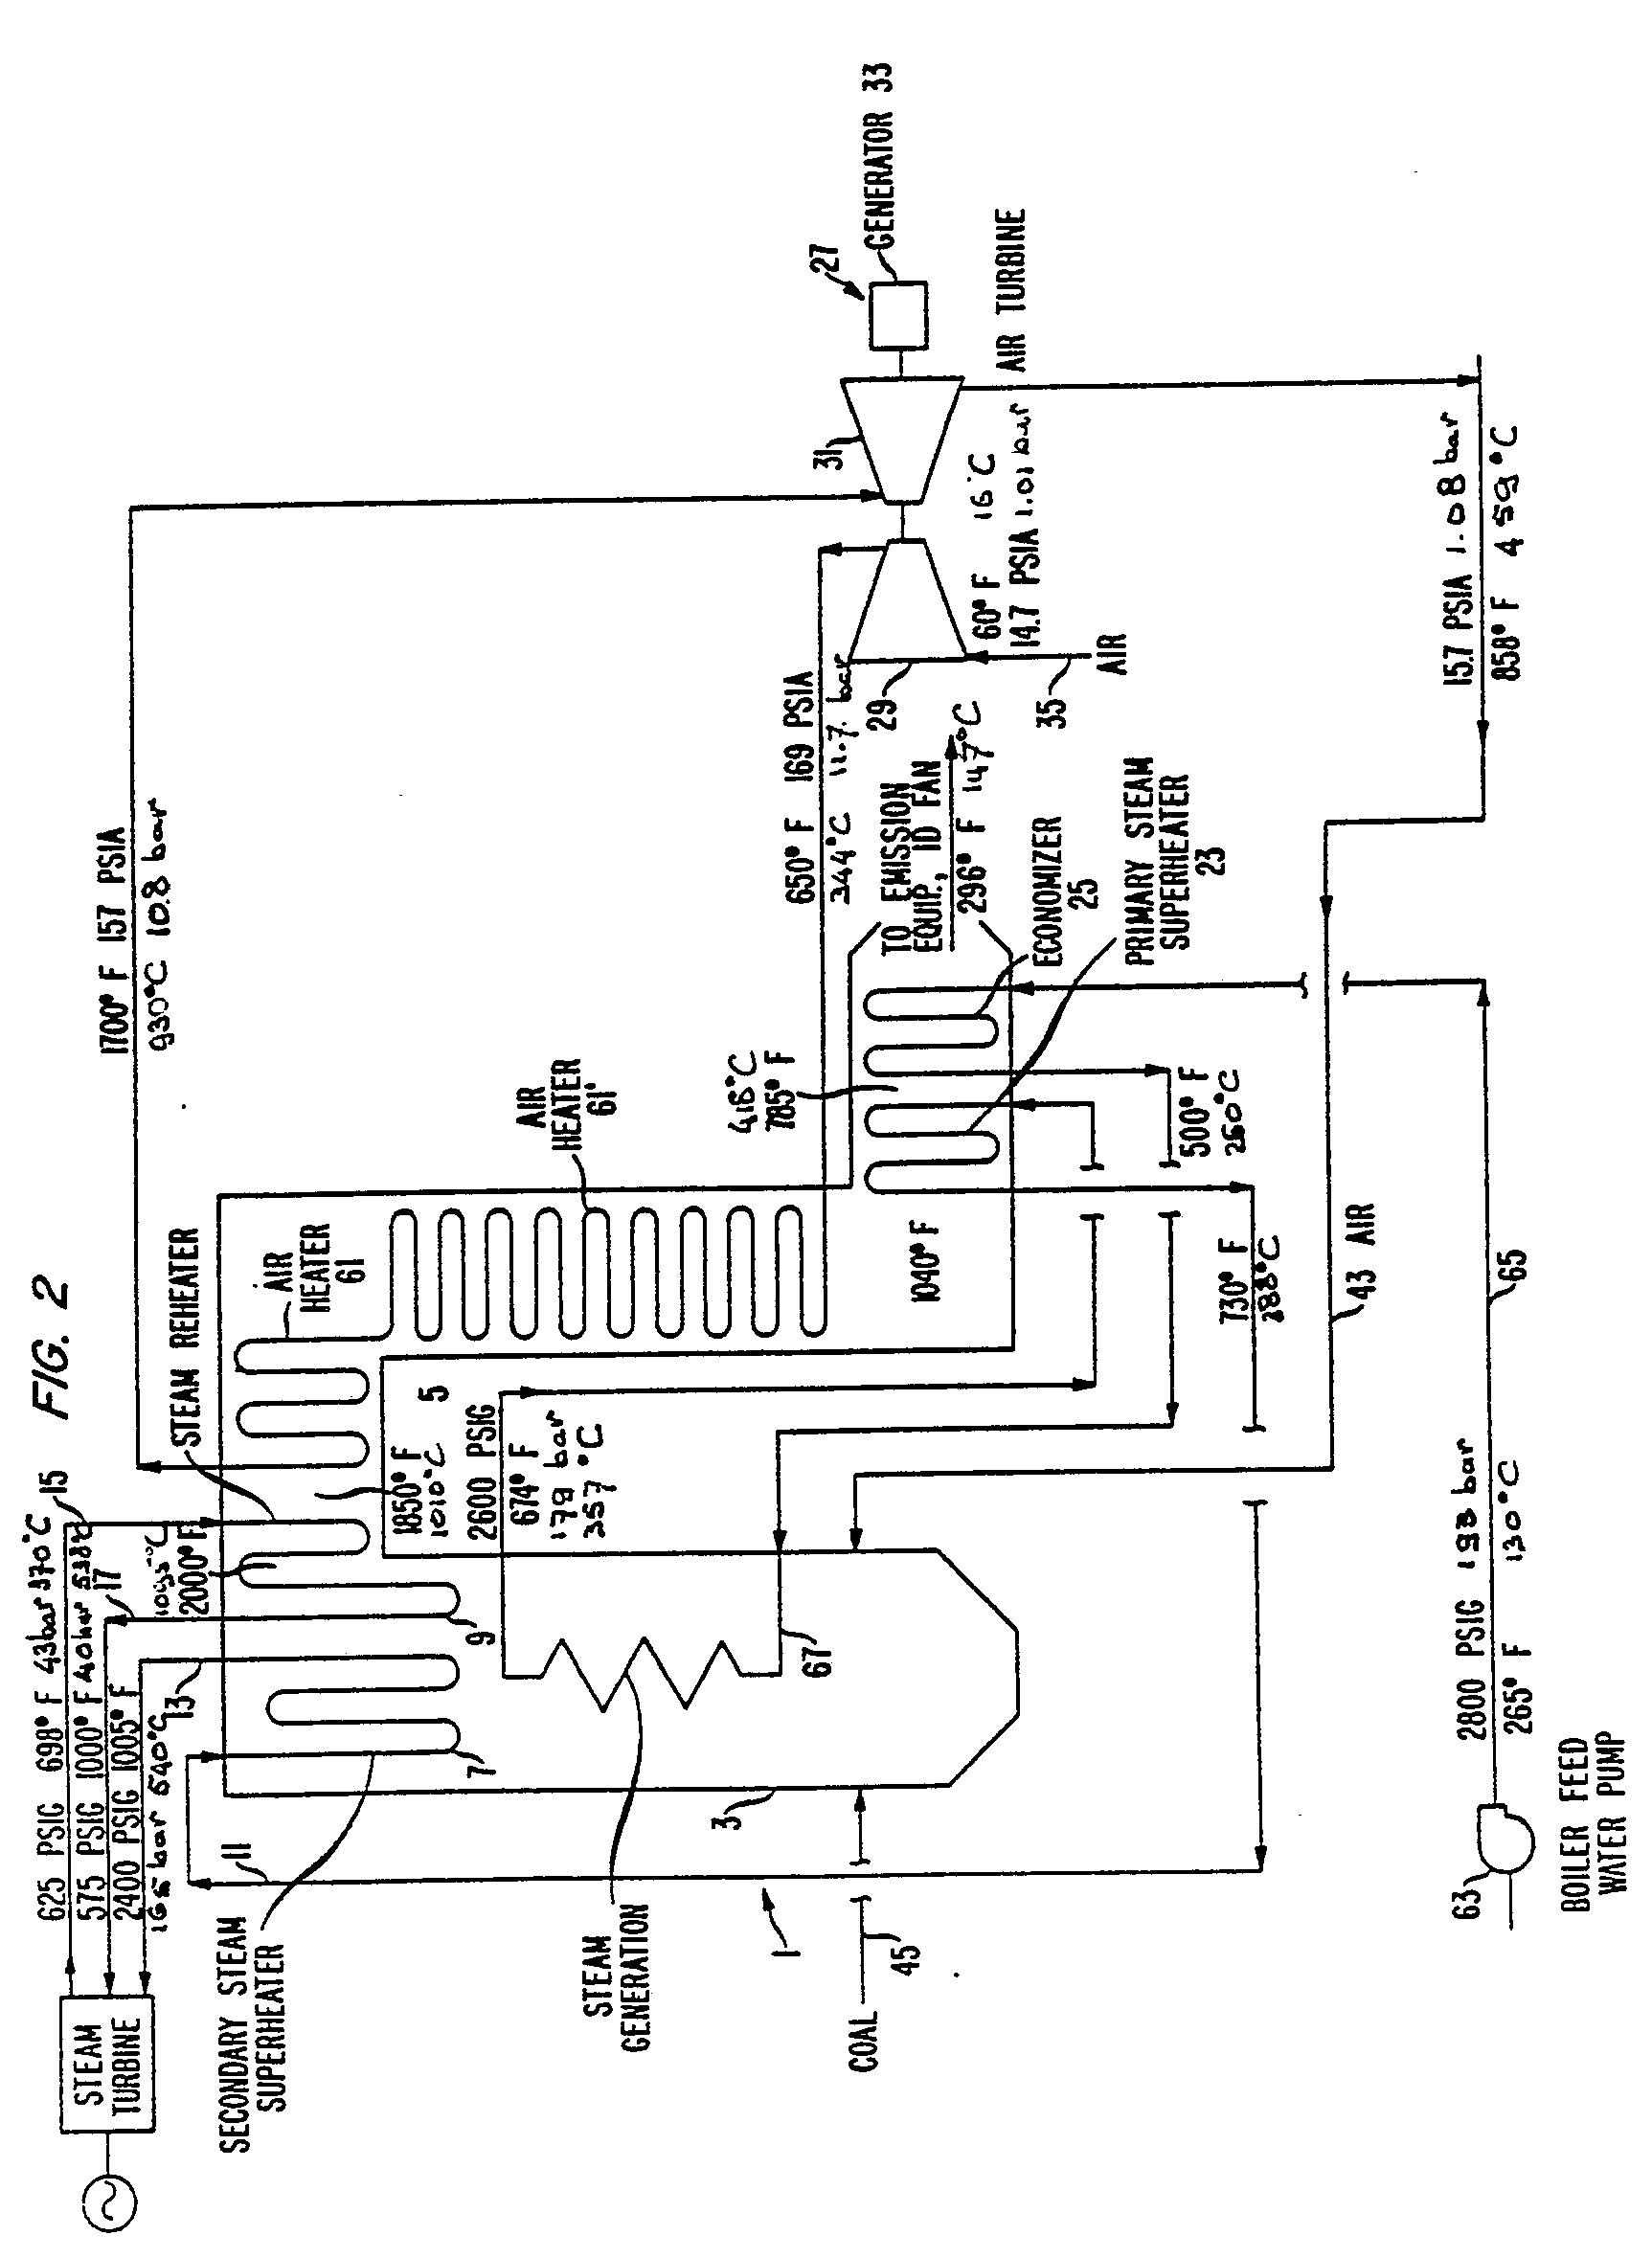 [WRG-2199] 1984 Delta 88 Fuse Box Diagram